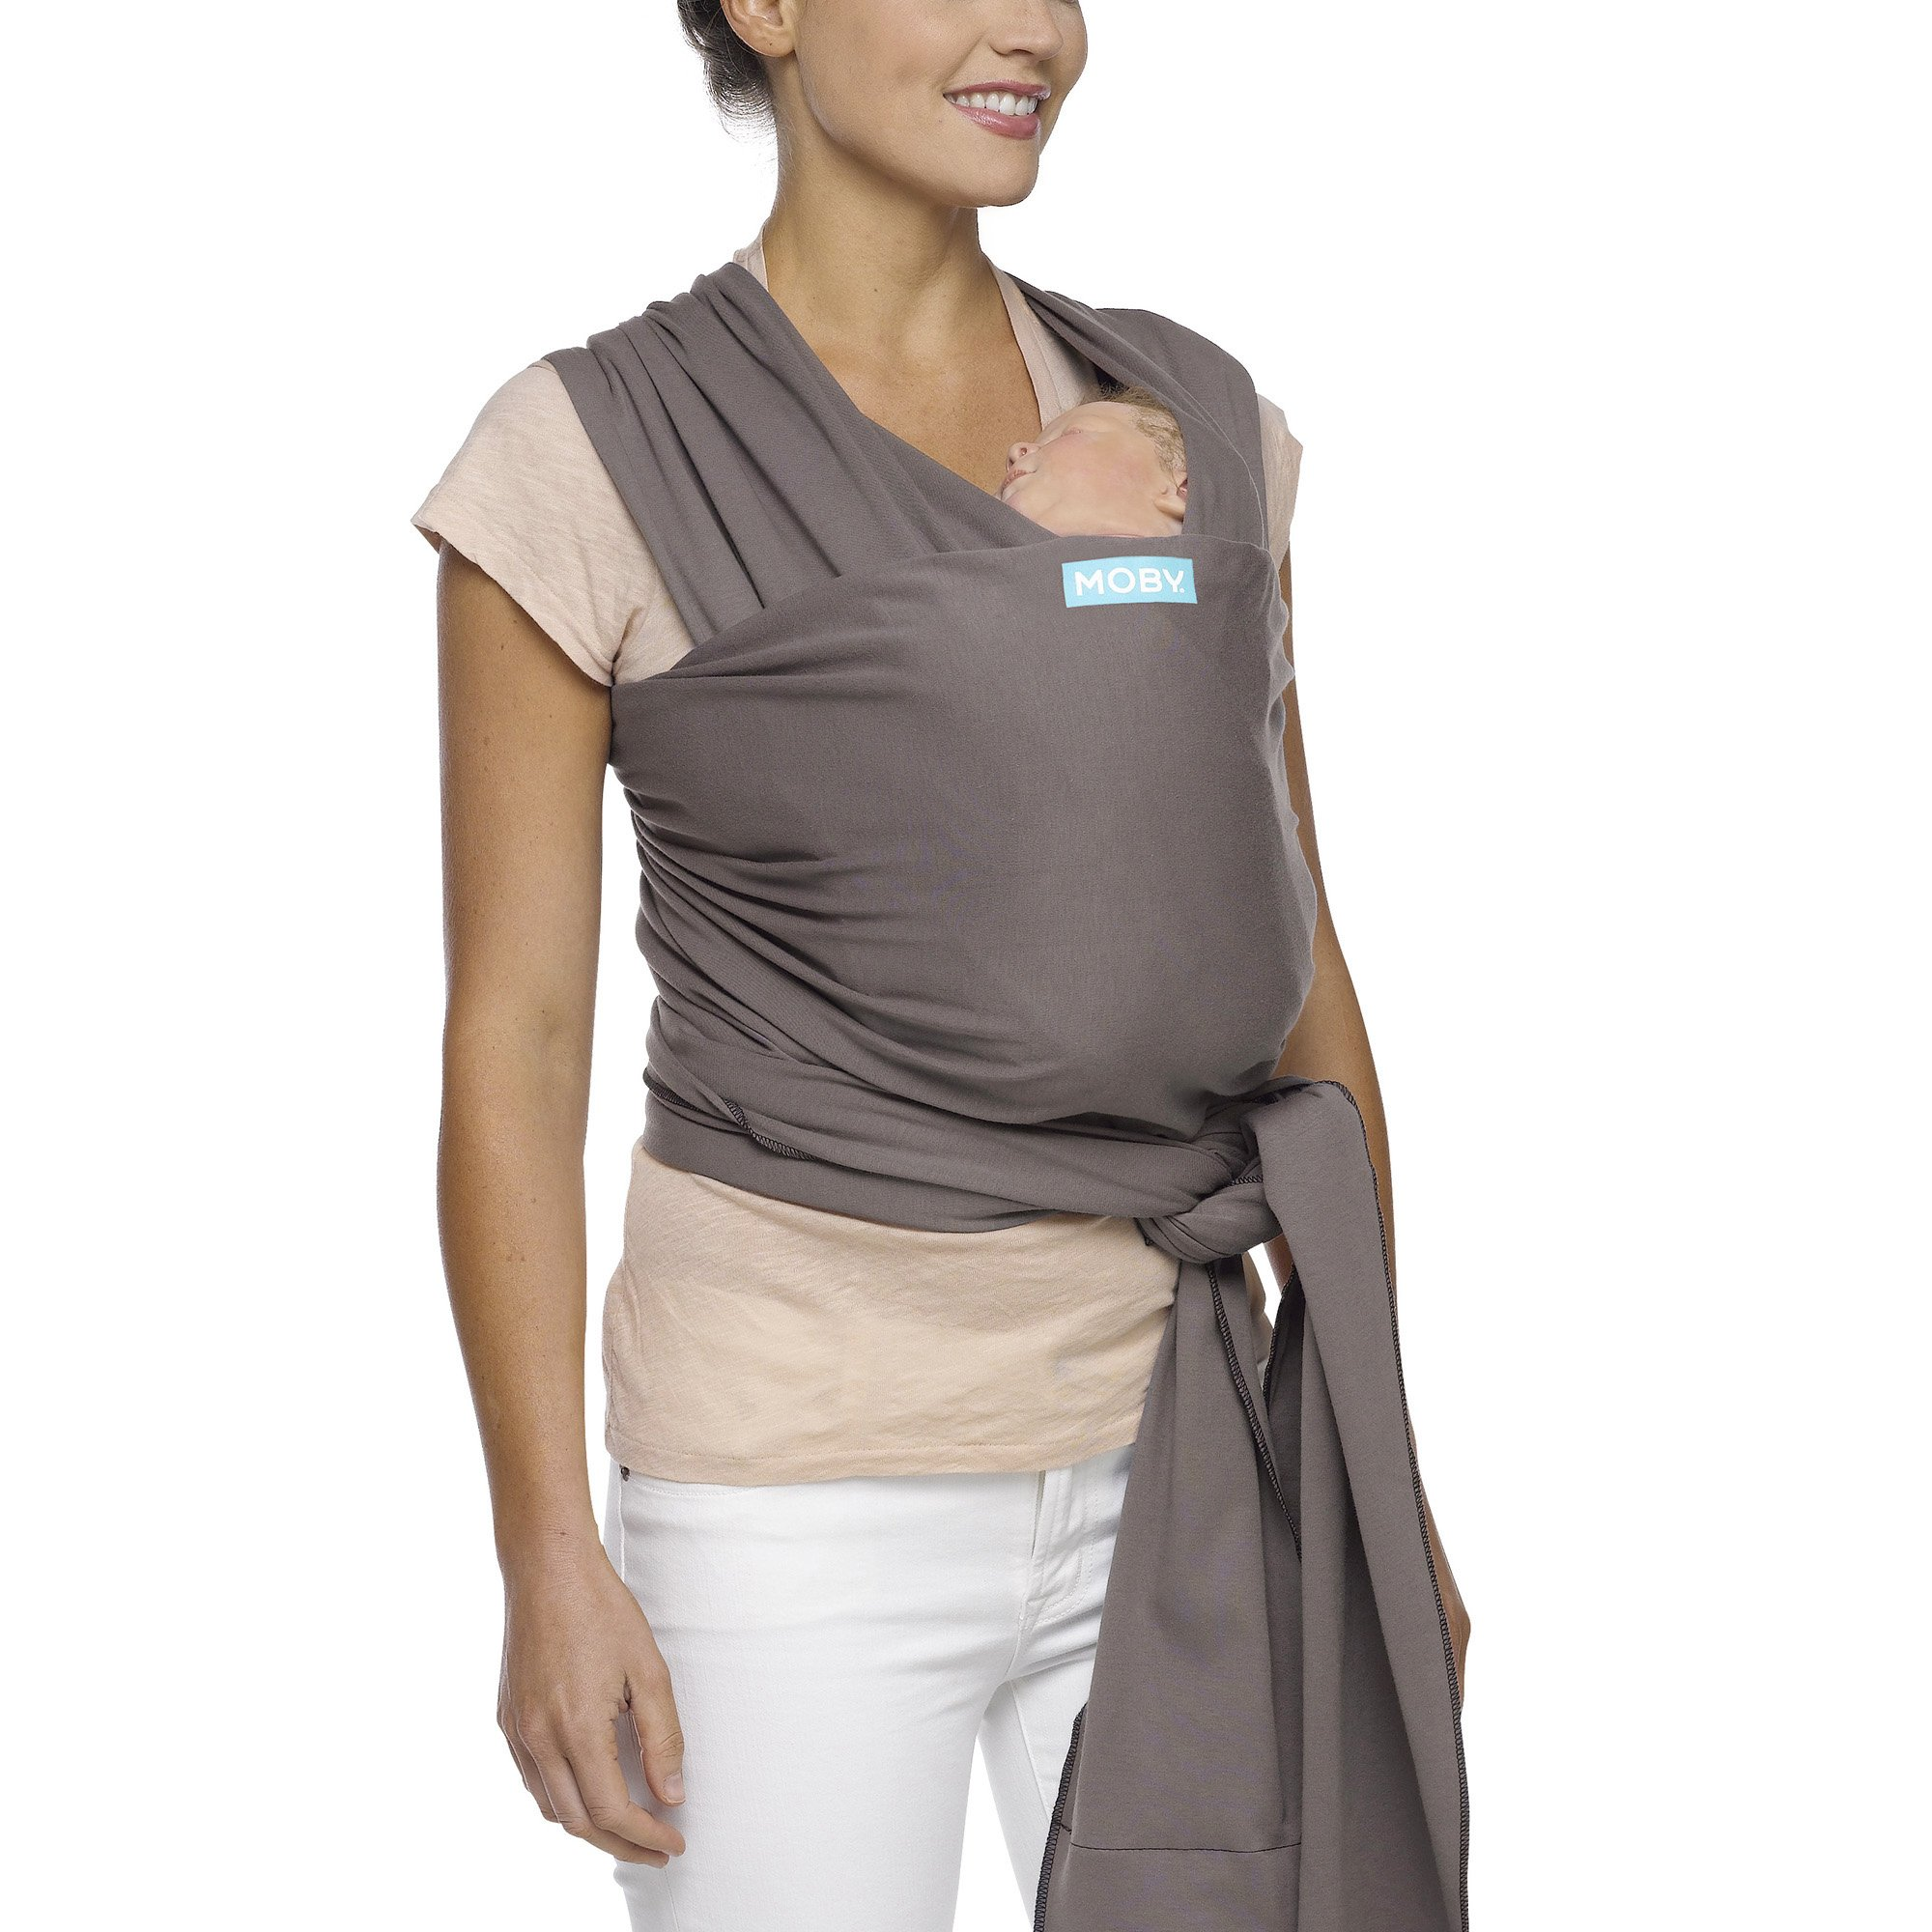 Moby Wrap Baby Carrier for Newborns + Toddlers Soft Baby Sling Baby Wrap, Ideal for Baby Wearing, Breastfeeding, and Keeping Baby Close - Slate